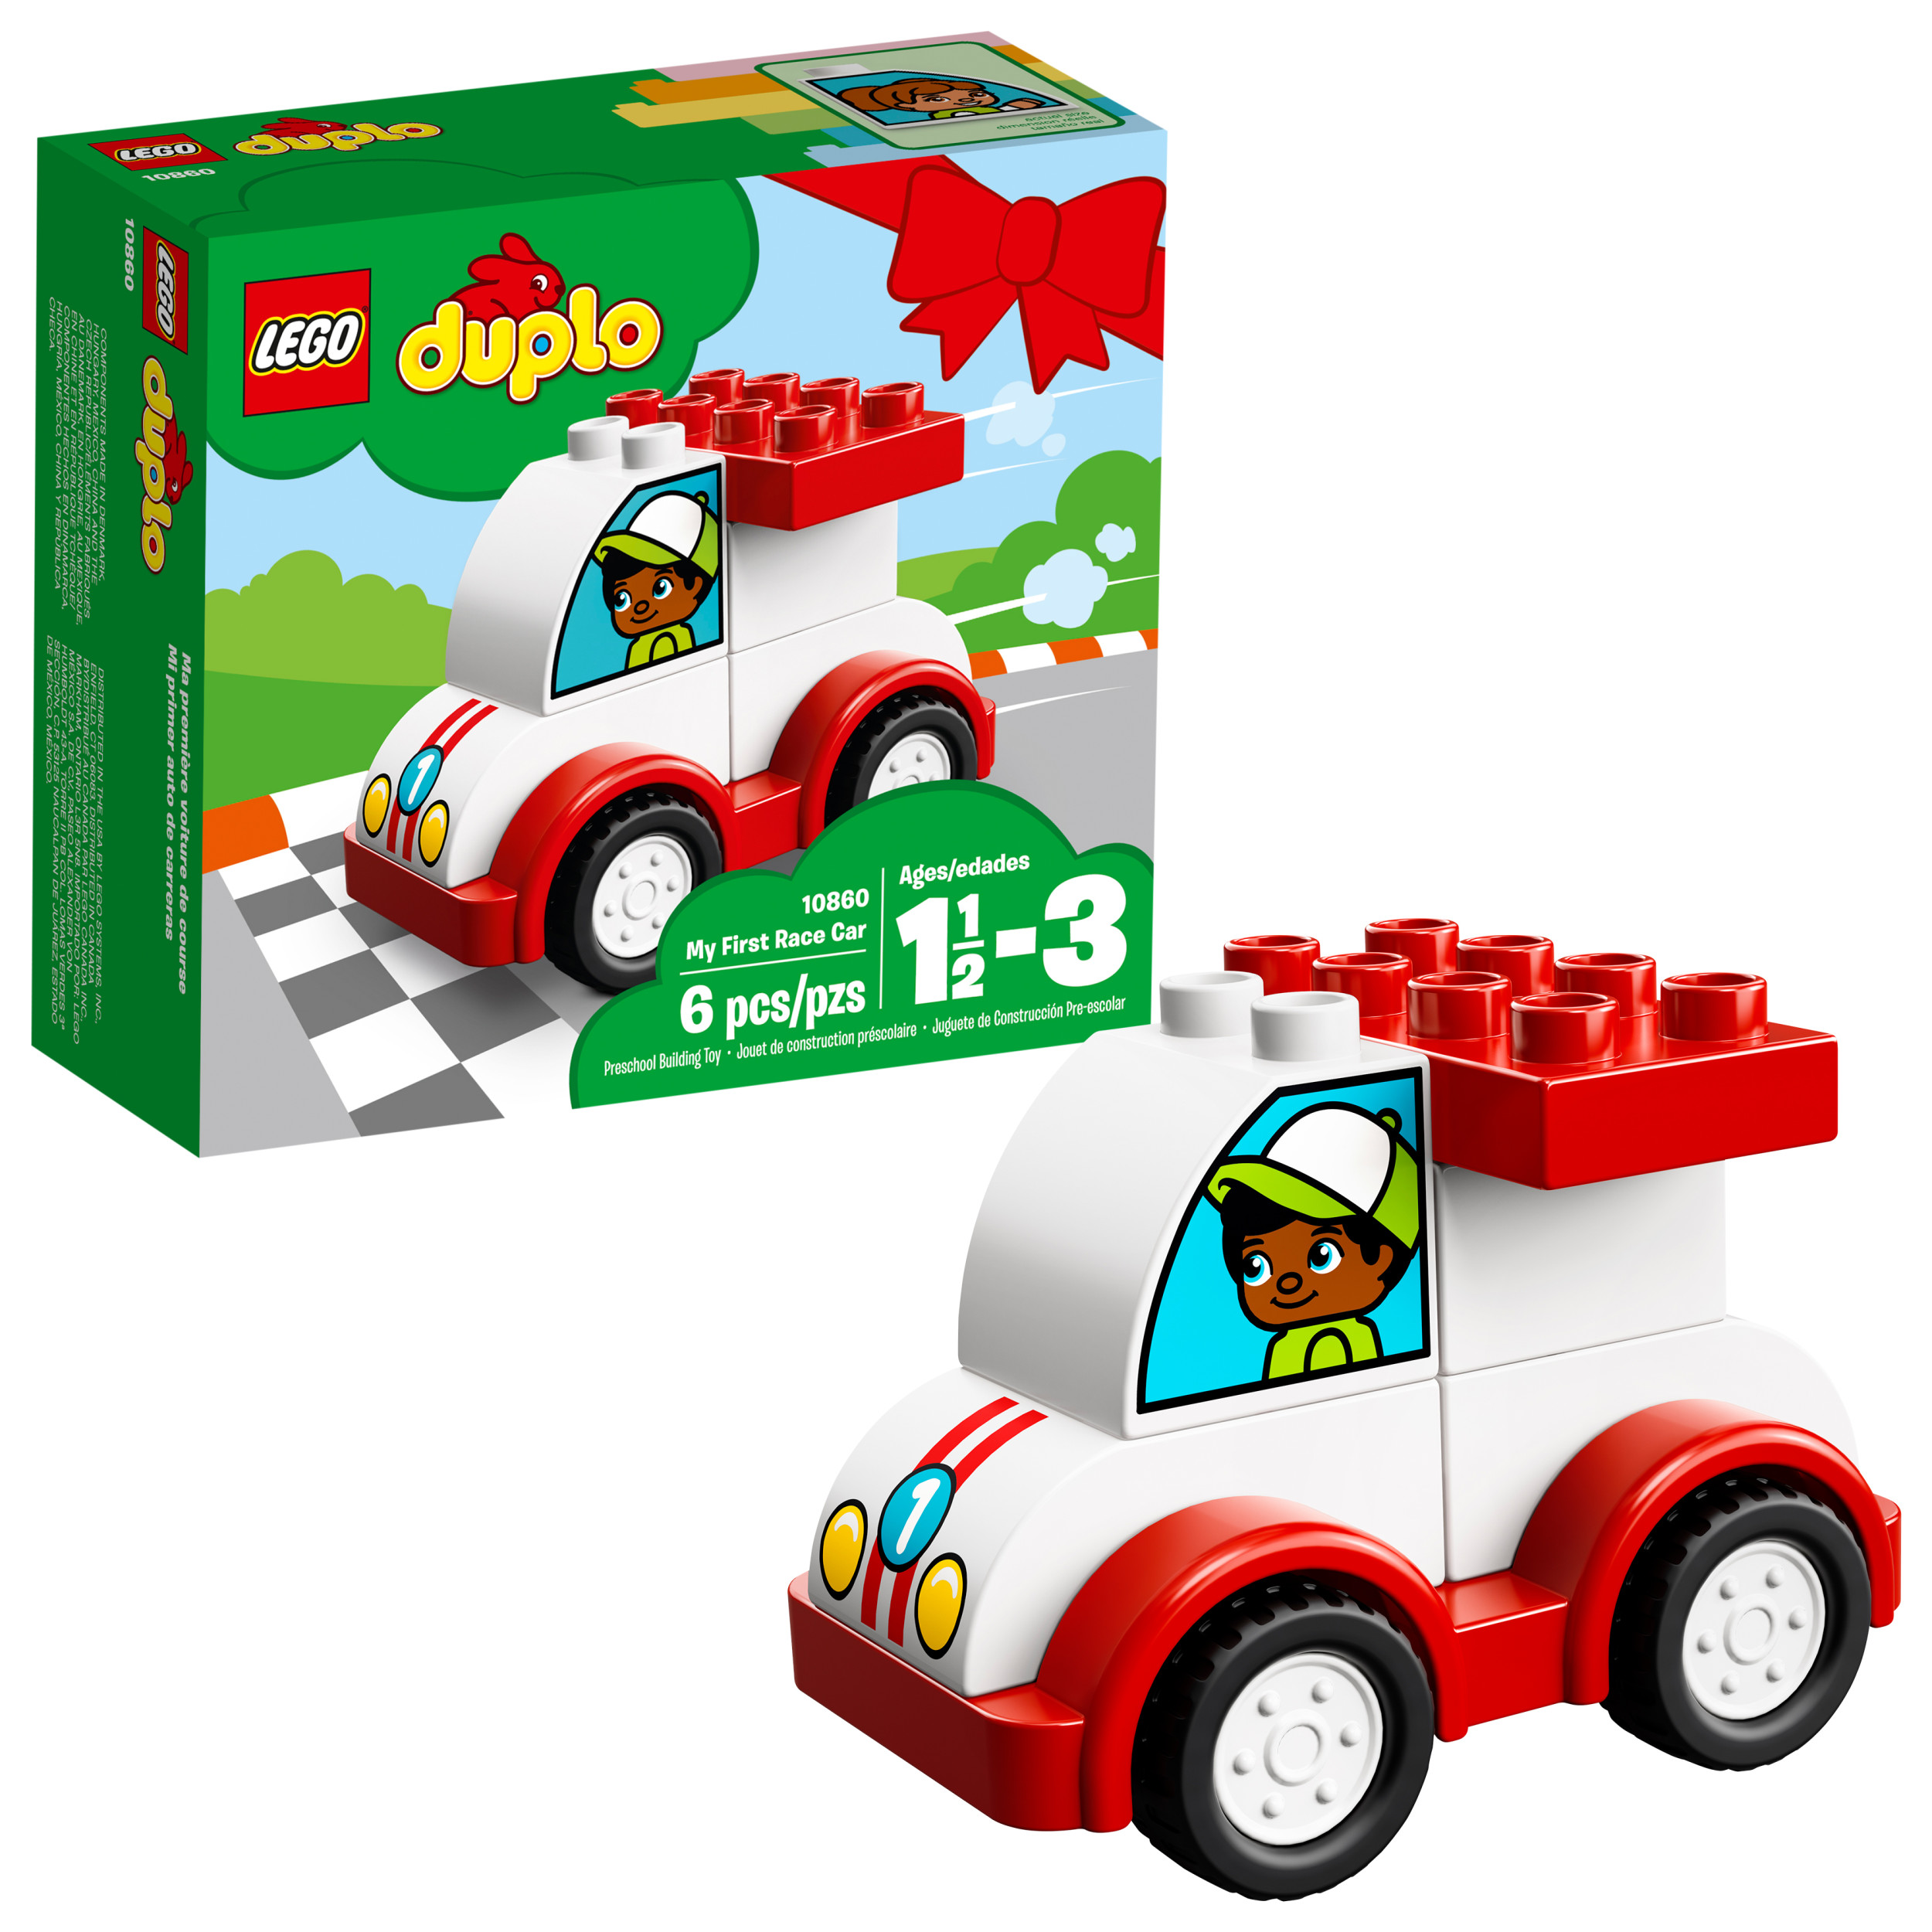 Lego Duplo My First Race Car 10860 Building Blocks 6 Pieces